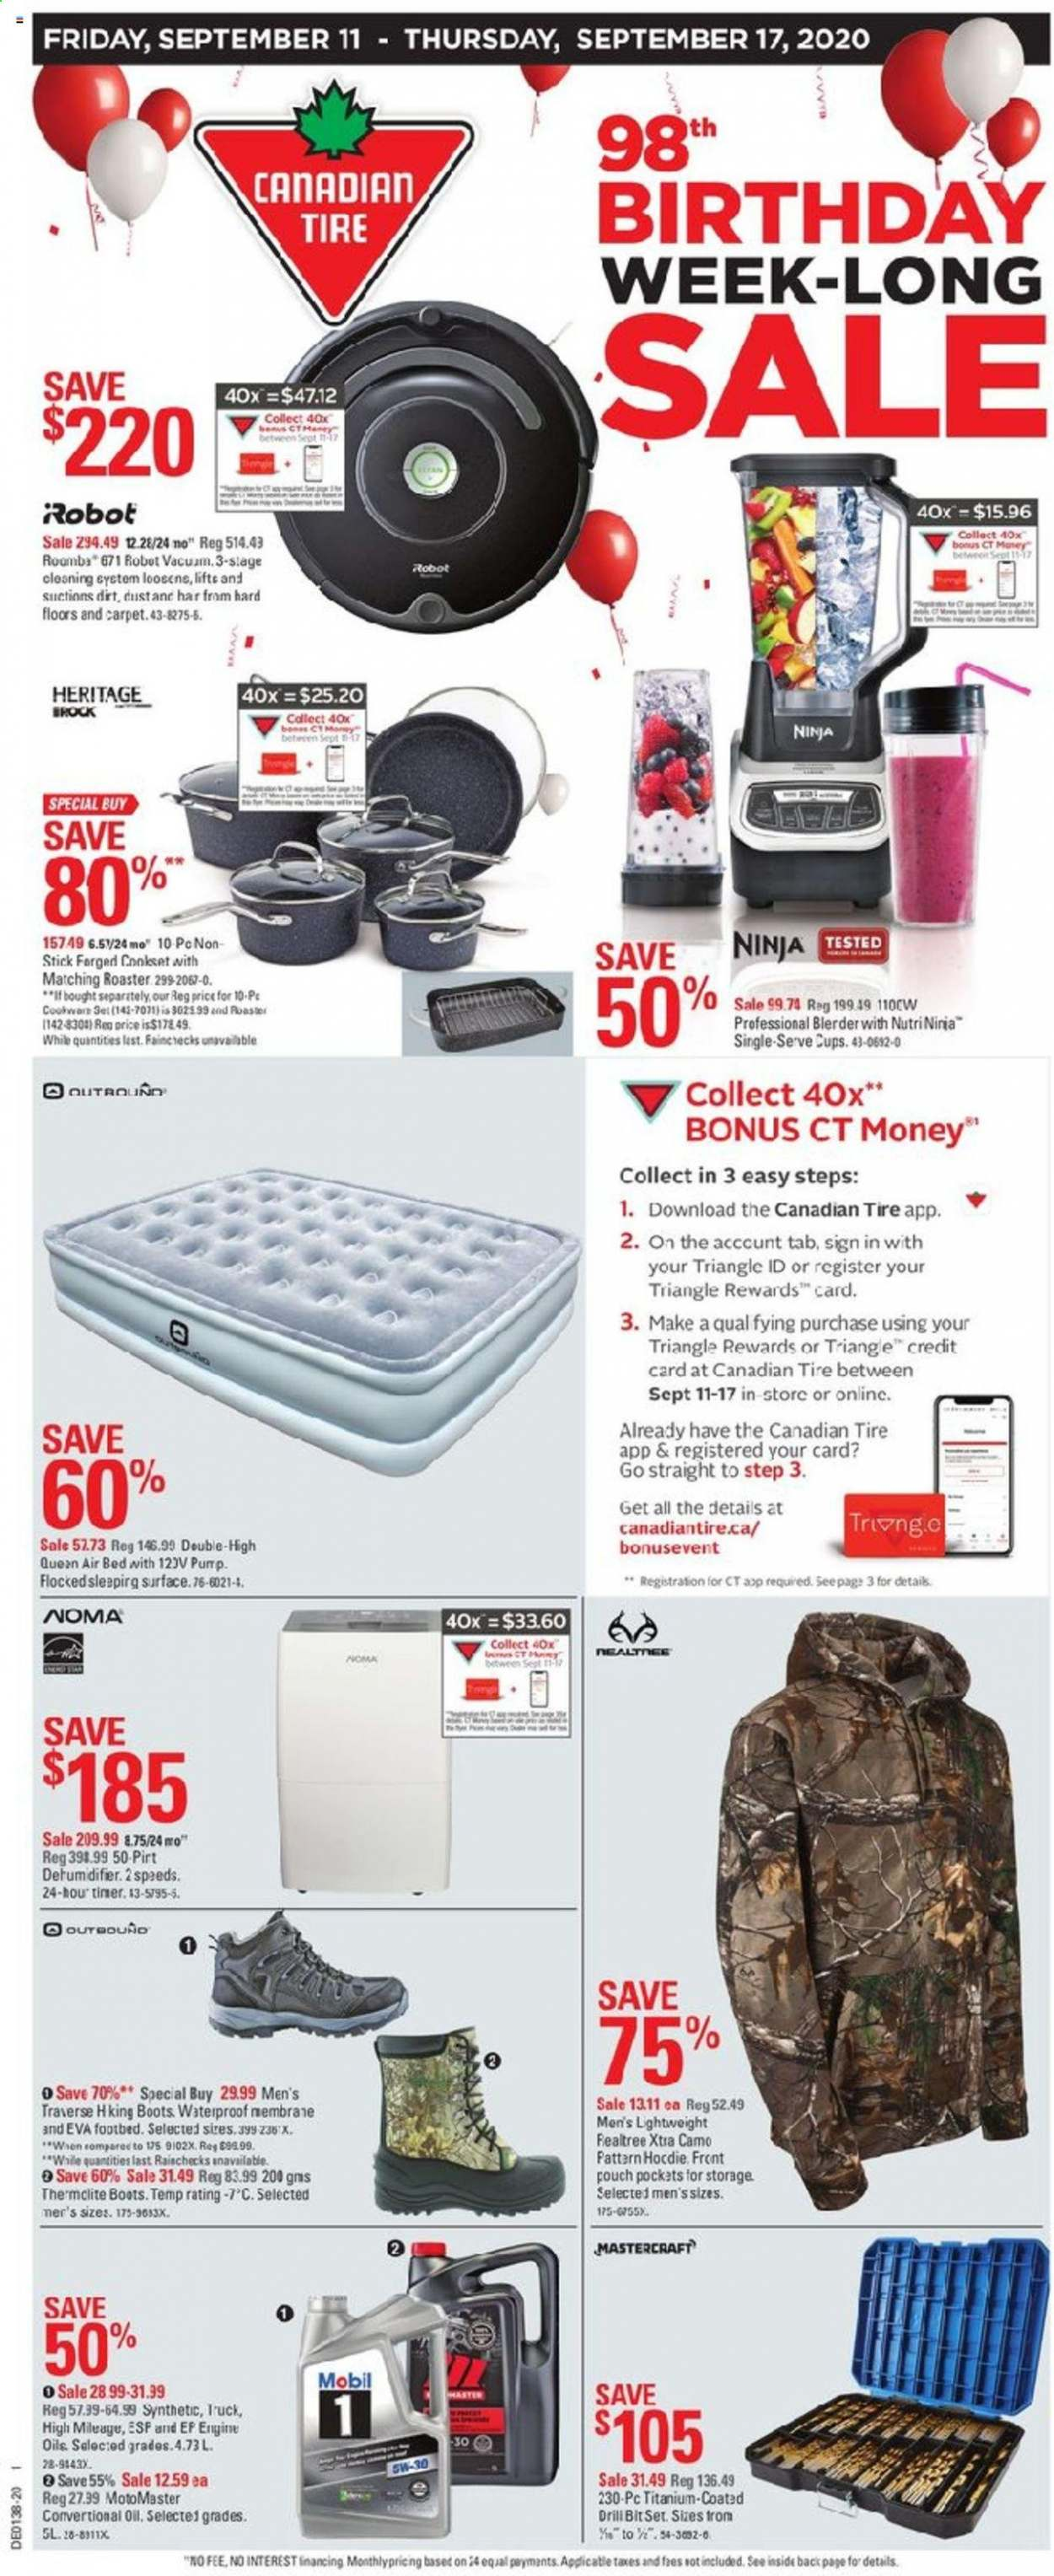 Canadian Tire Flyer - September 11, 2020 - September 17, 2020 - Sales products - bed, boots, drill, mobil, robot, surface, timer, ninja, carpet, triangle, pump, bones, oil, waterproof. Page 1.